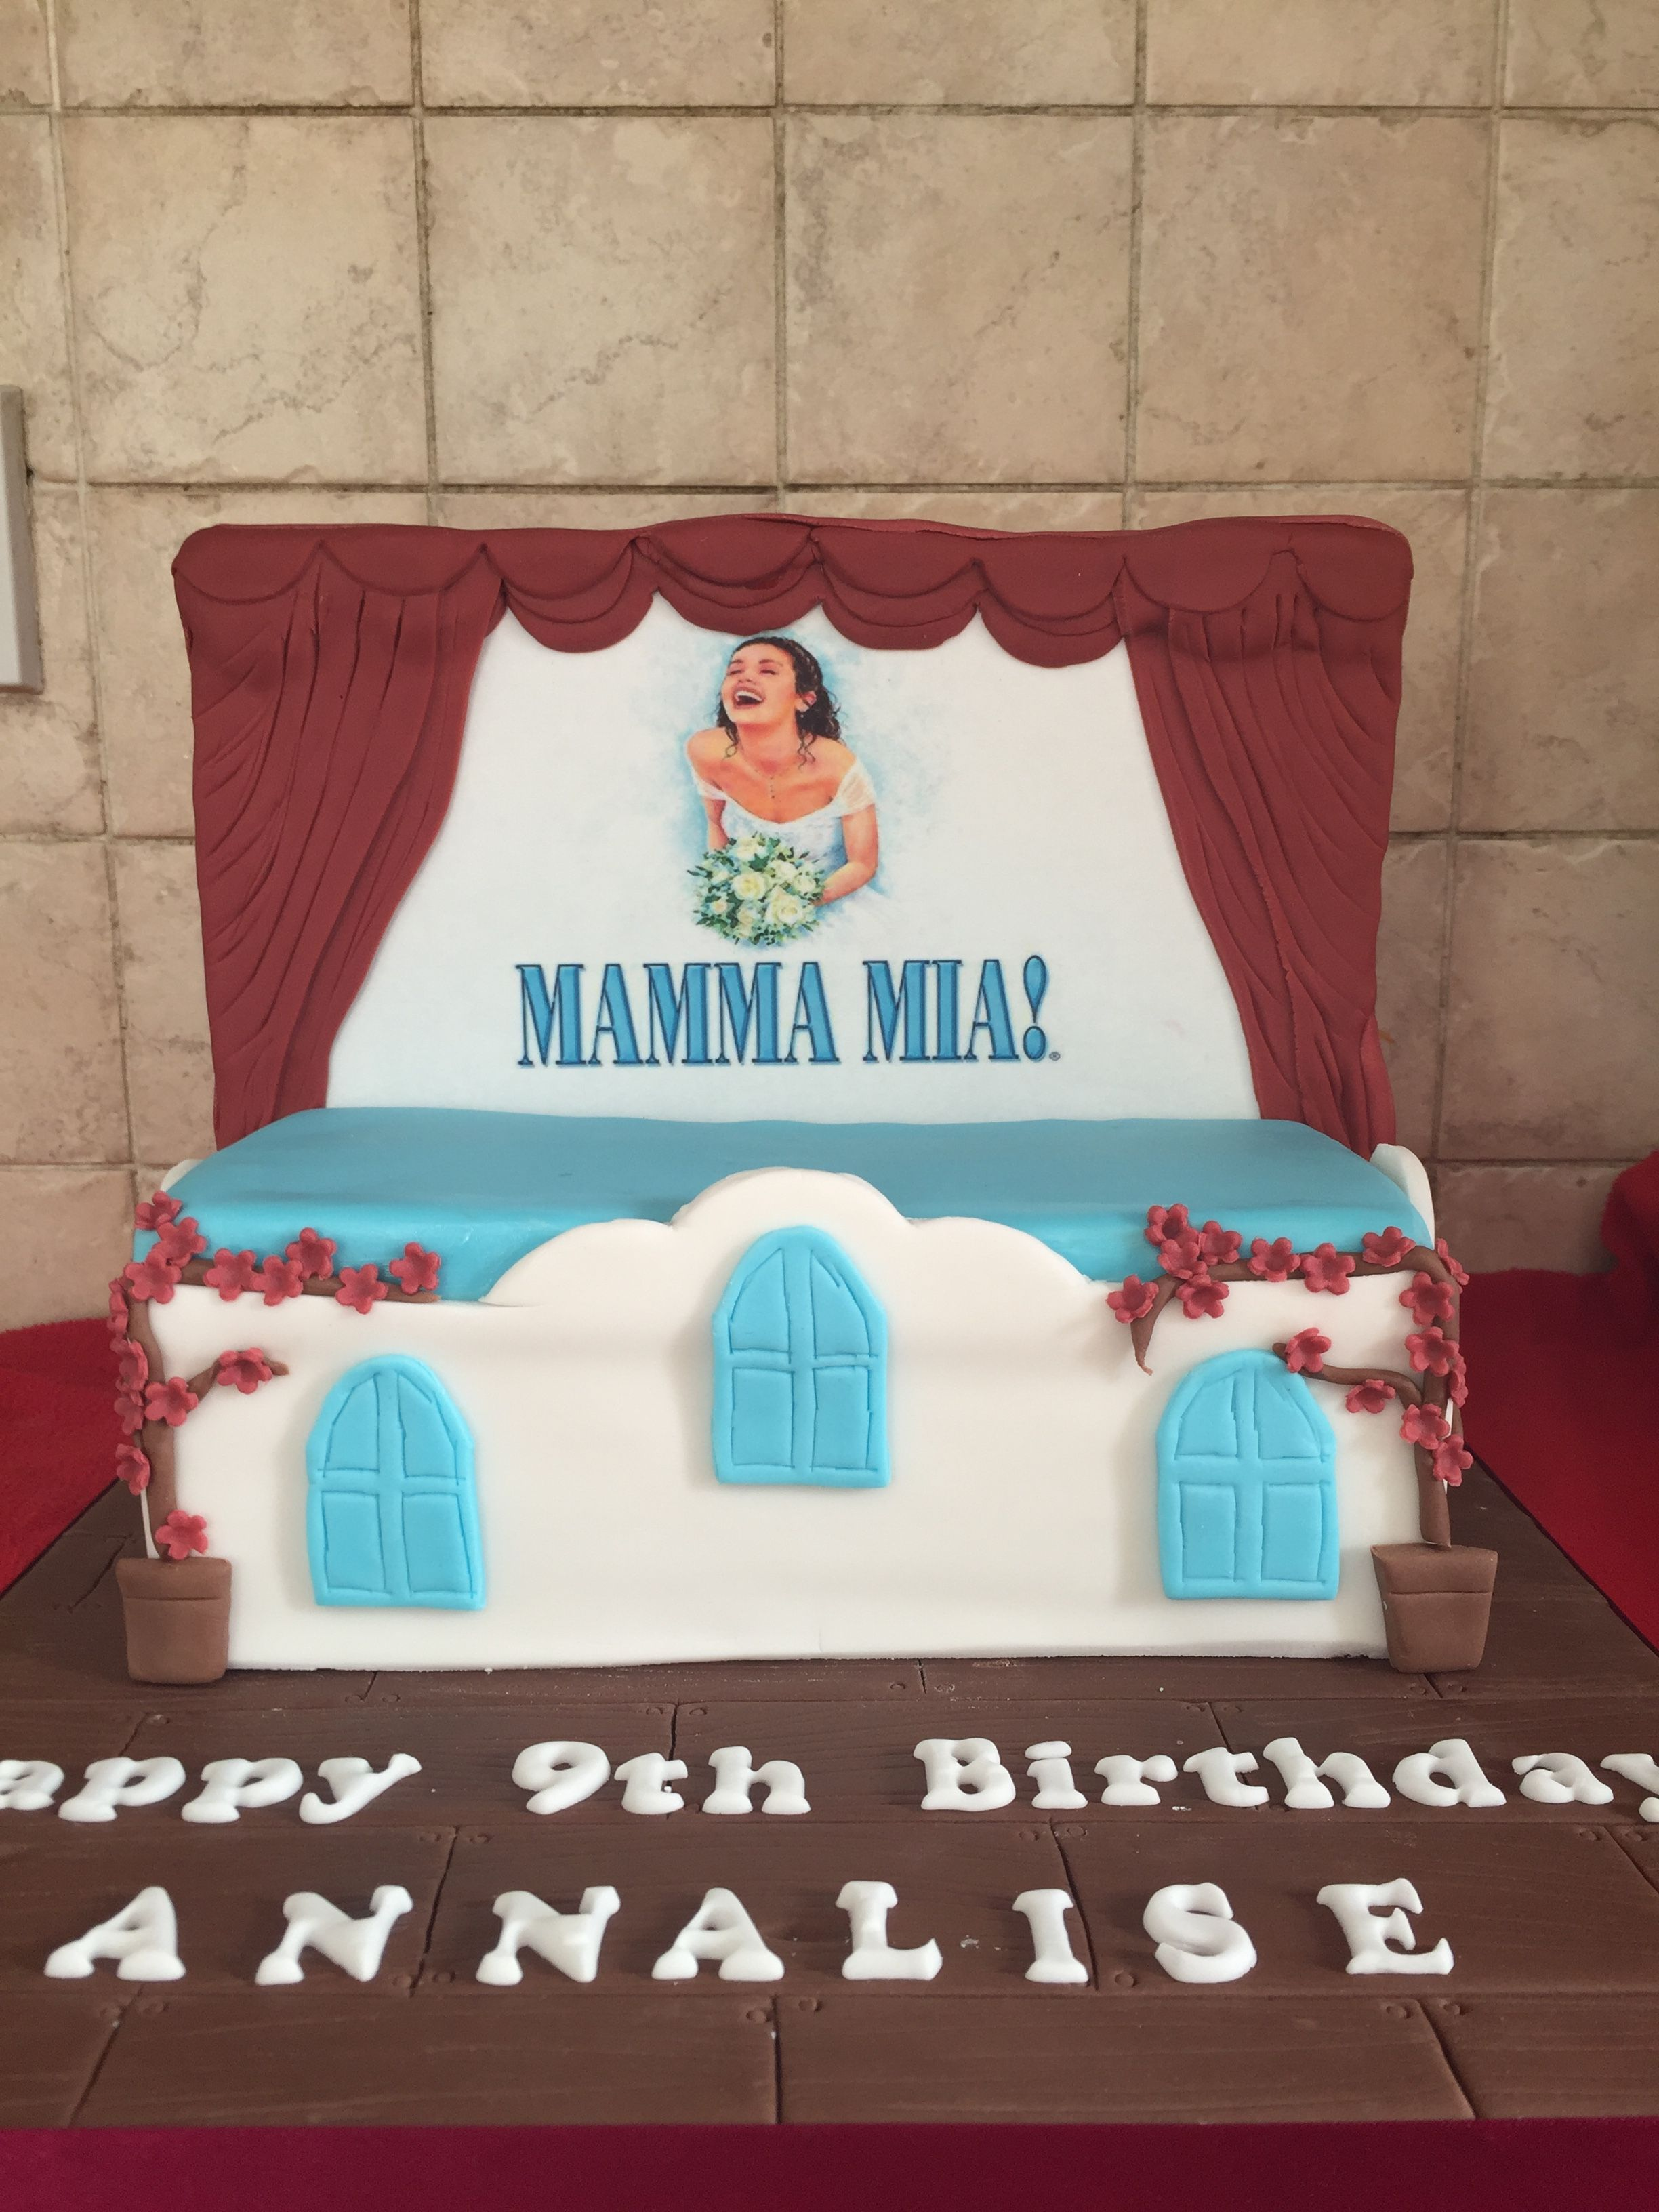 Musical Theatre Loving 9year Olds Mamma Mia Cake Gwen